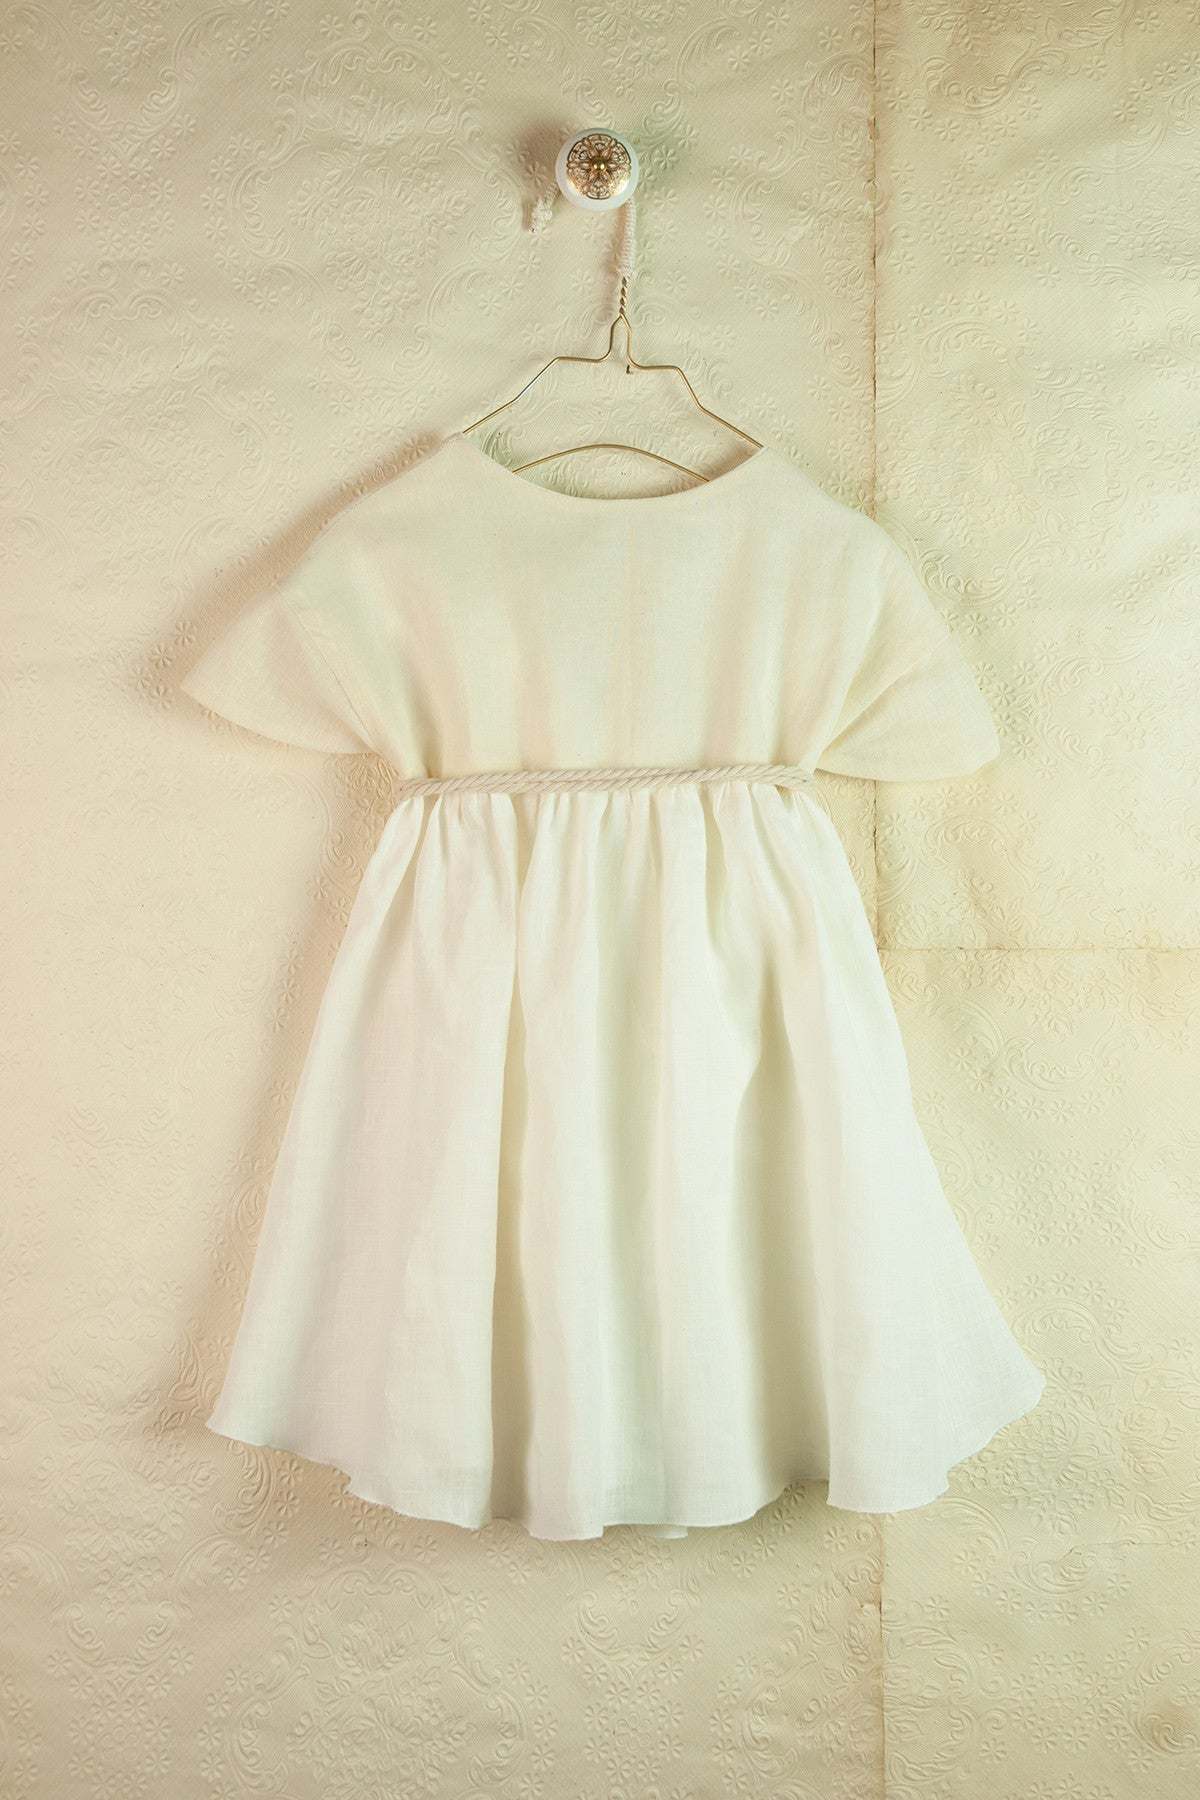 Popelin White Japanese Reversible Dress - Ladida